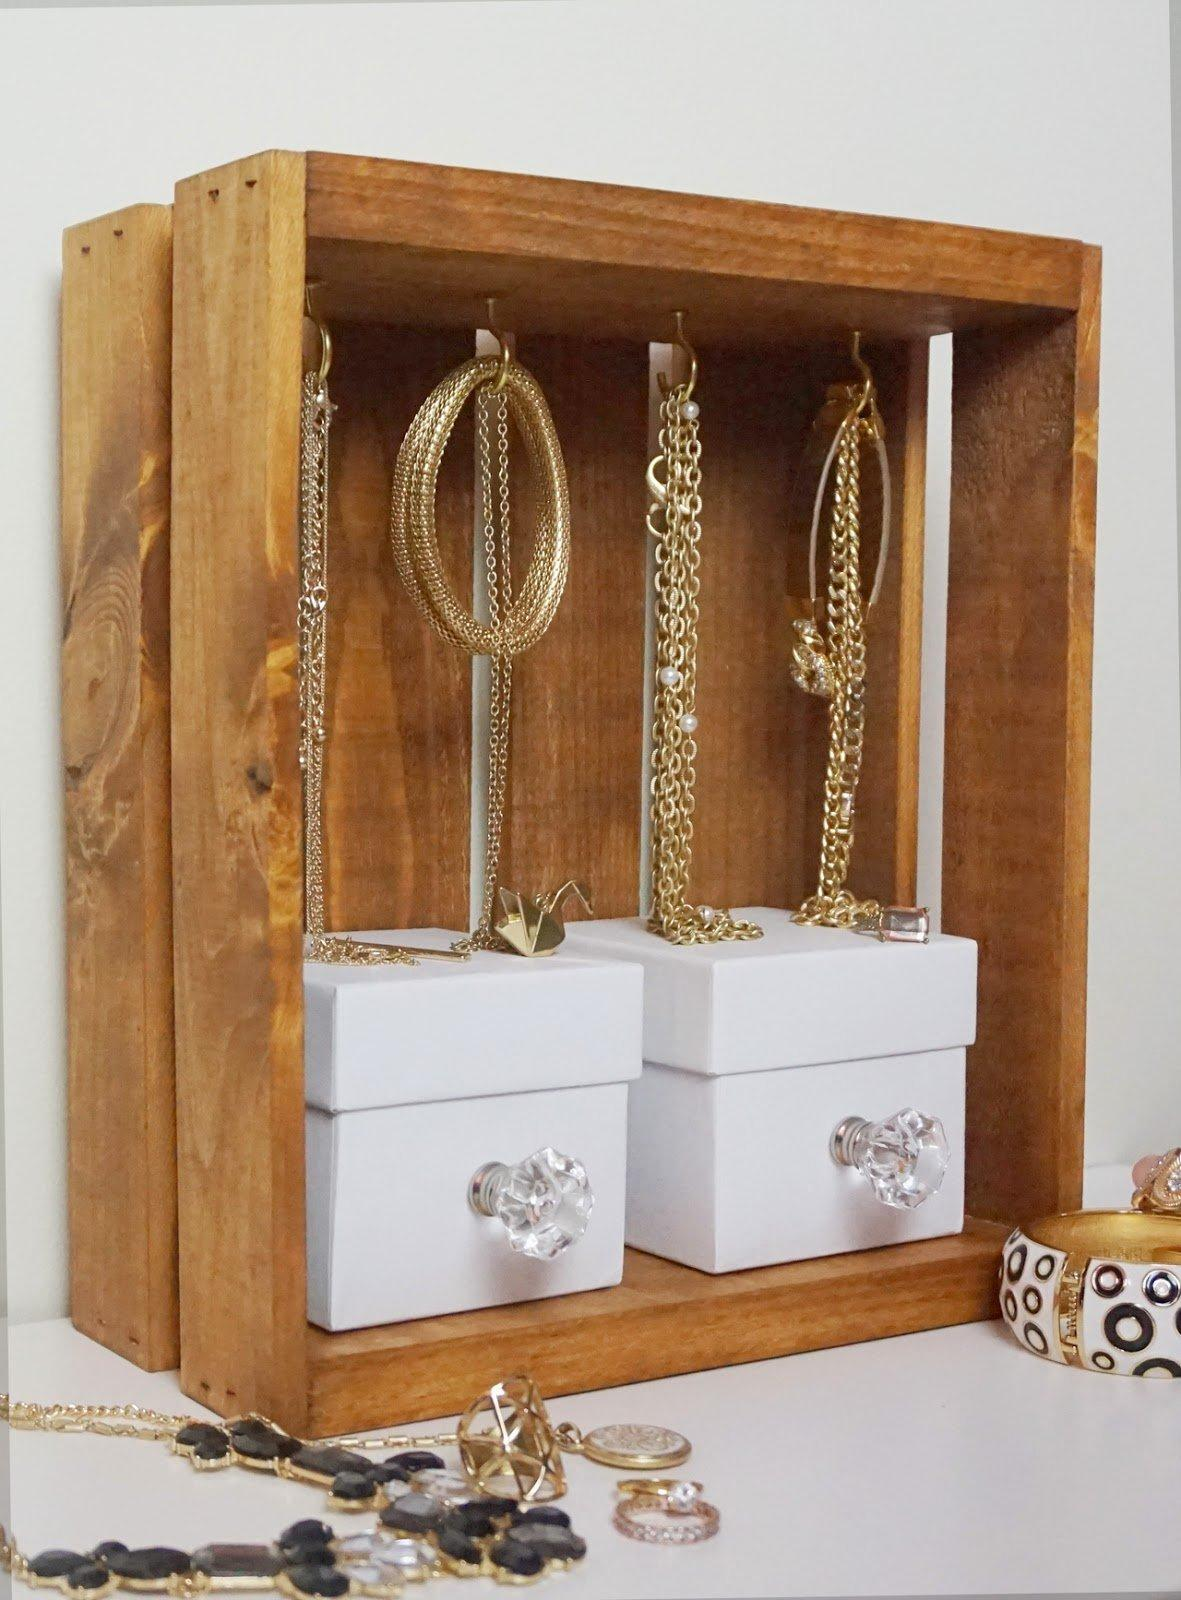 Jewelry Display Crate